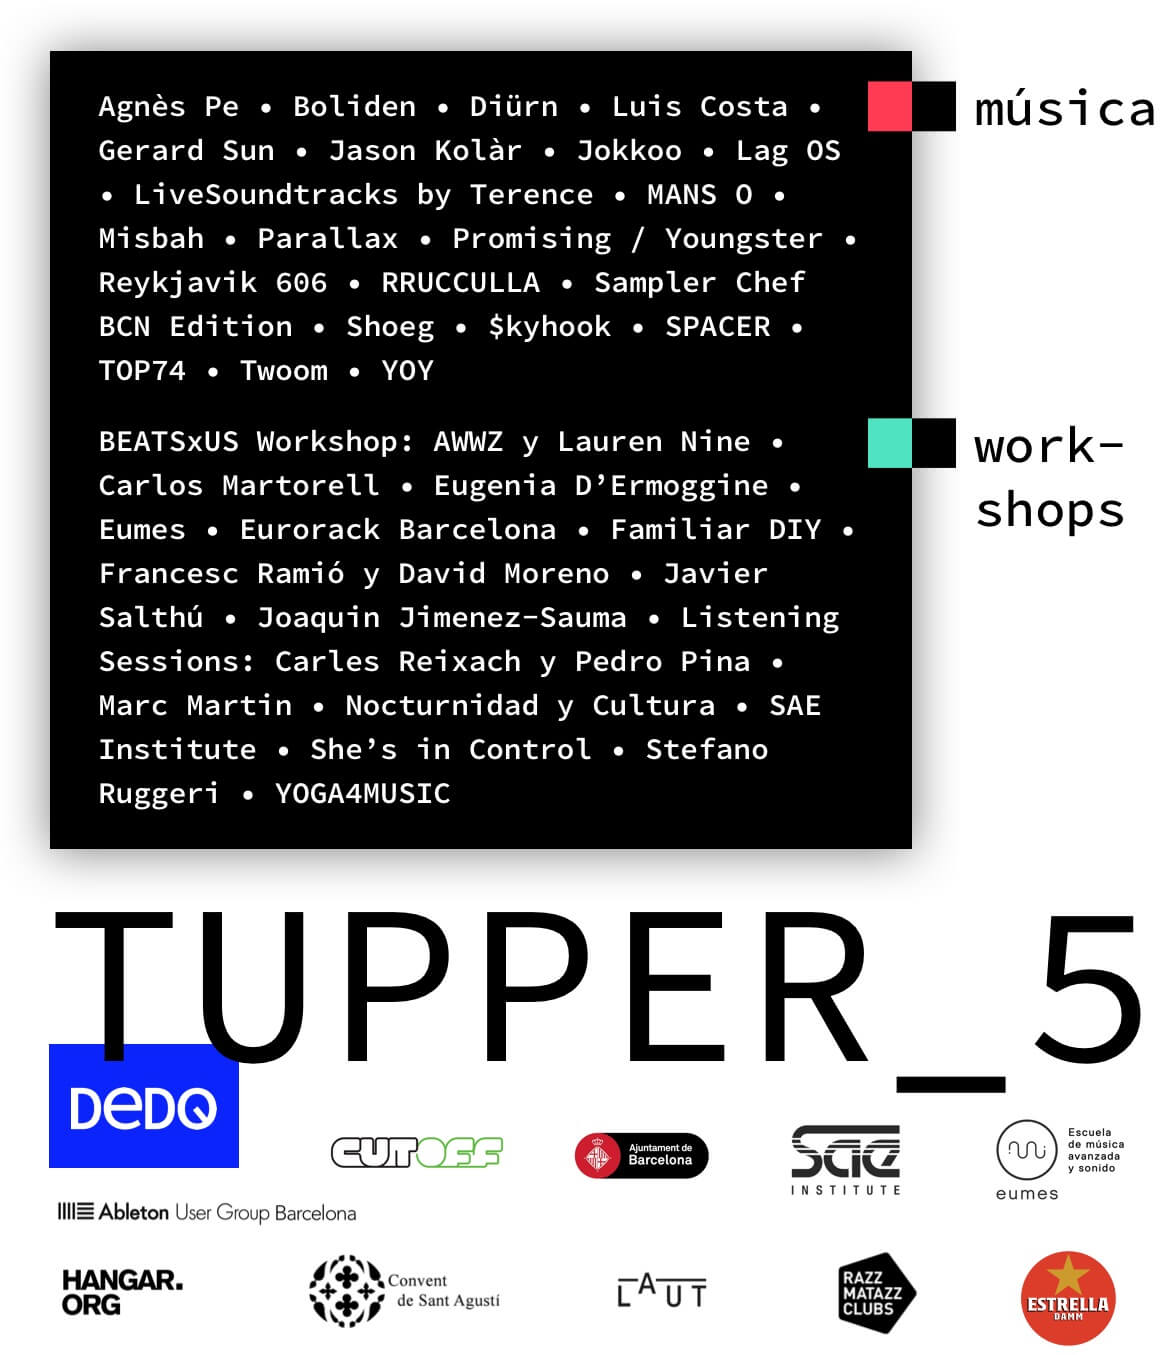 tupper-cartel-home